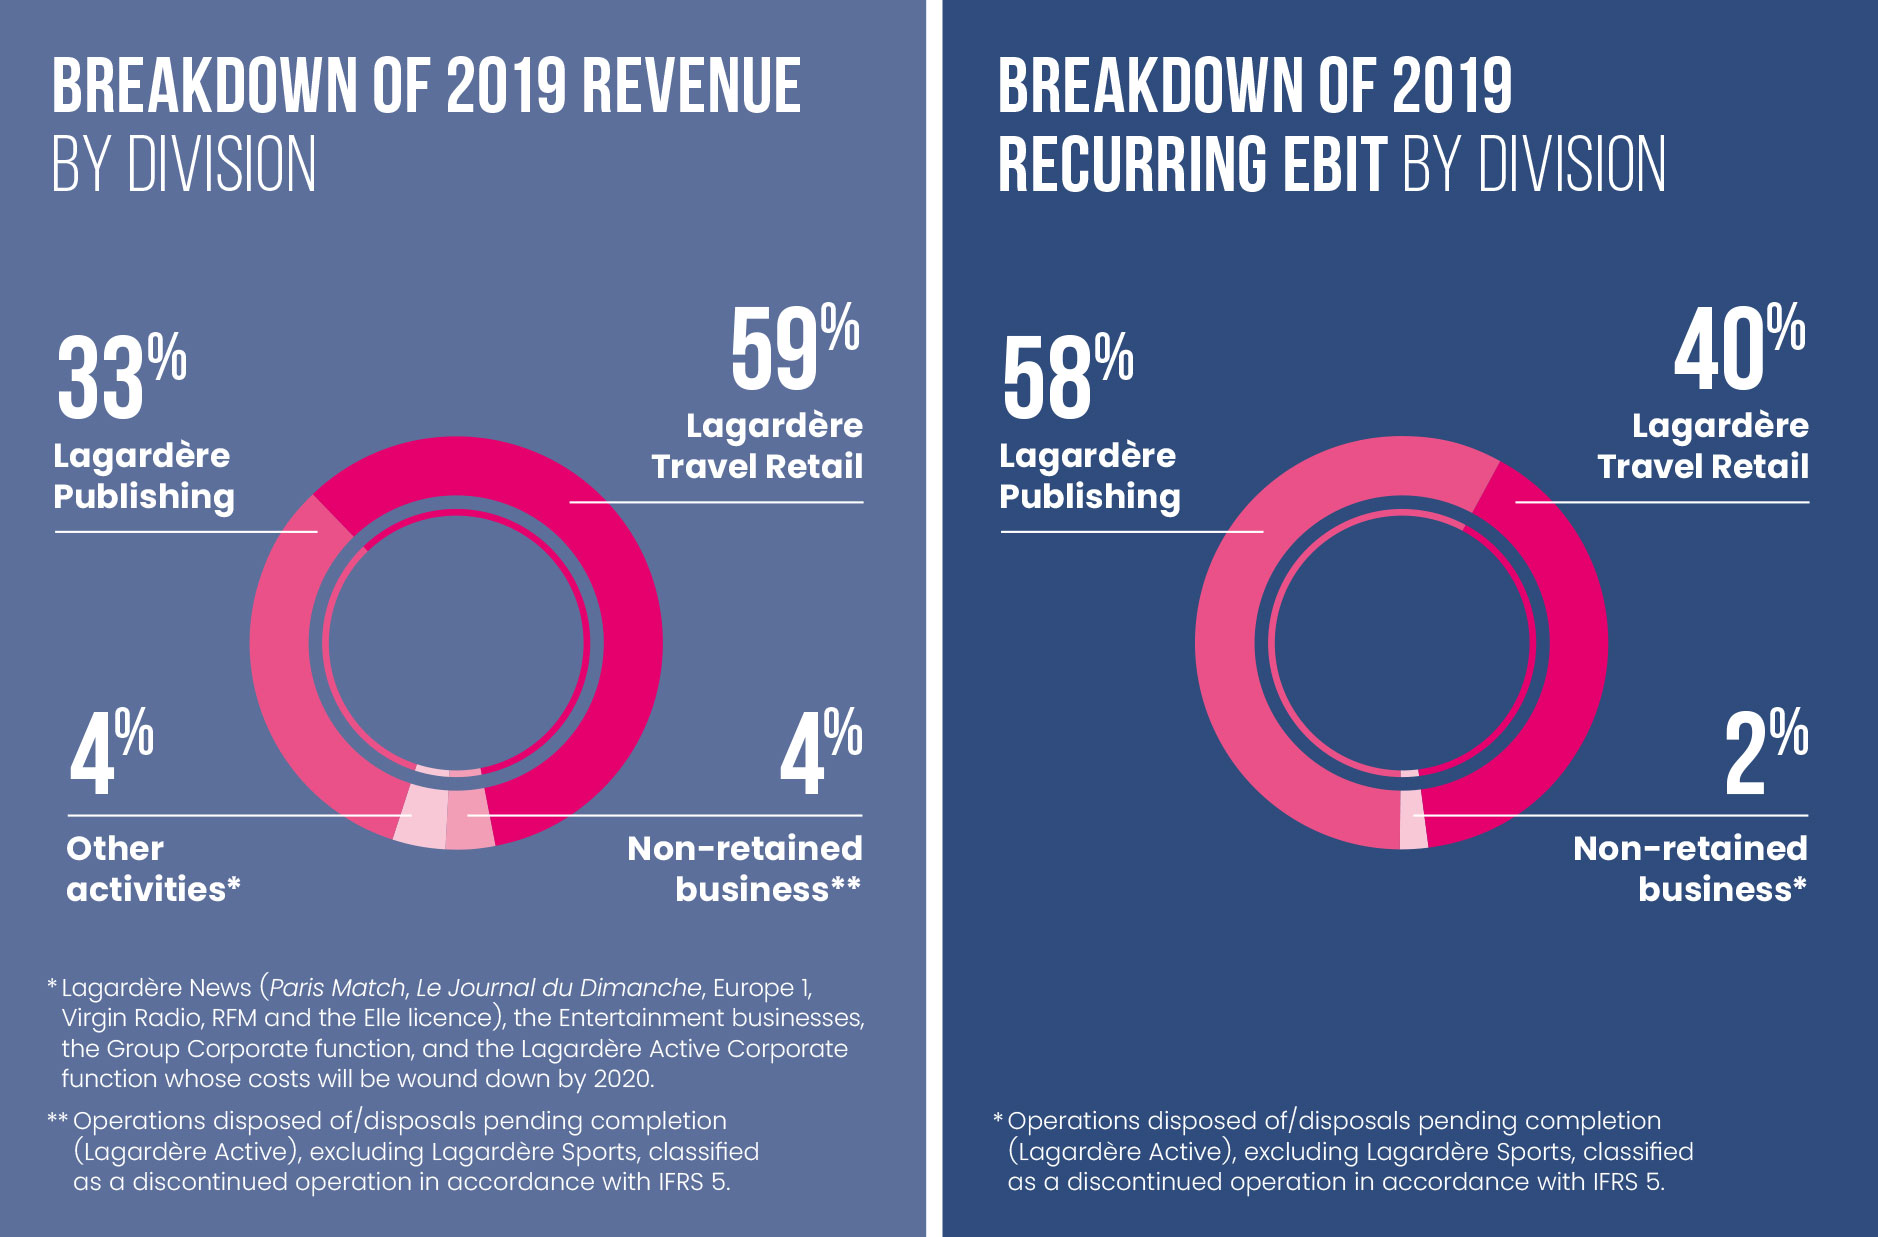 Breakdown of 2019 revenueand recurring EBIT by division